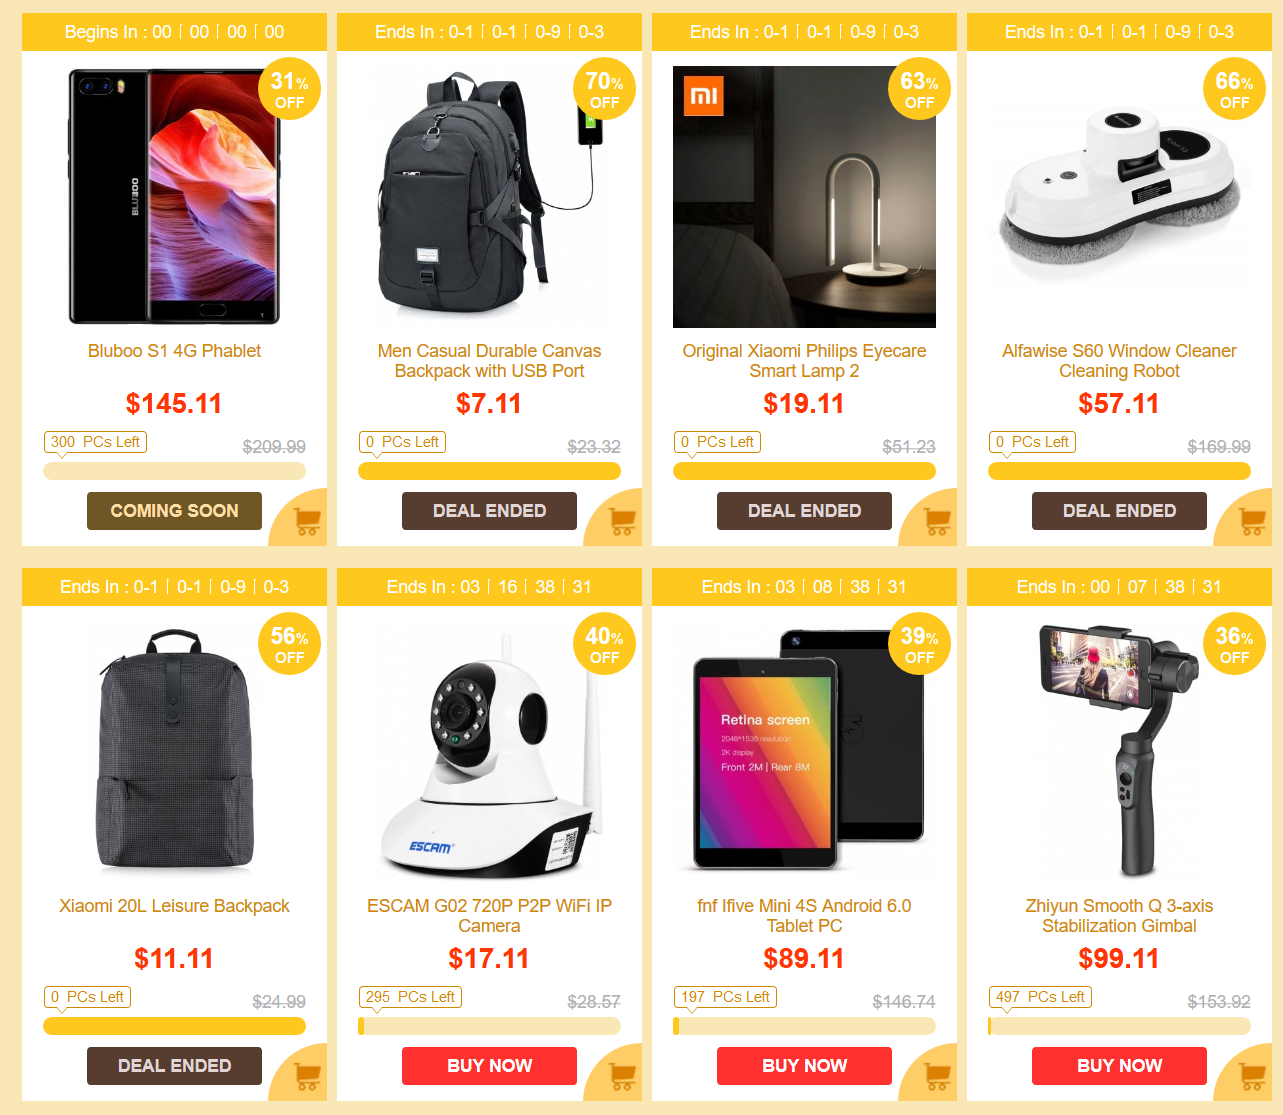 Gearbest China Black Friday Sale deals